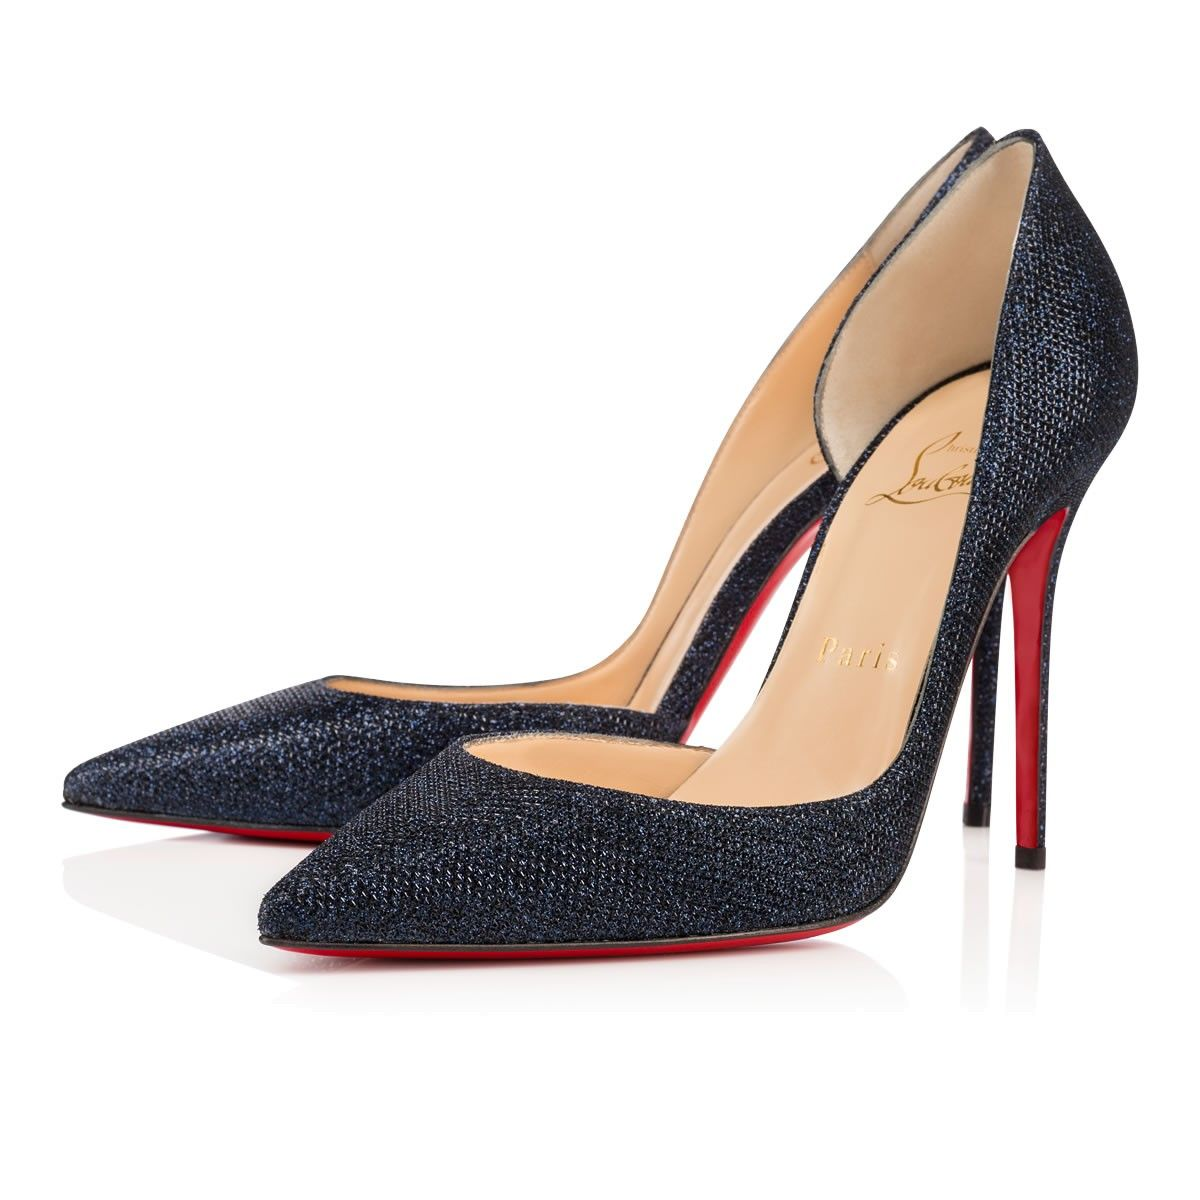 christian louboutin navy blue shoes